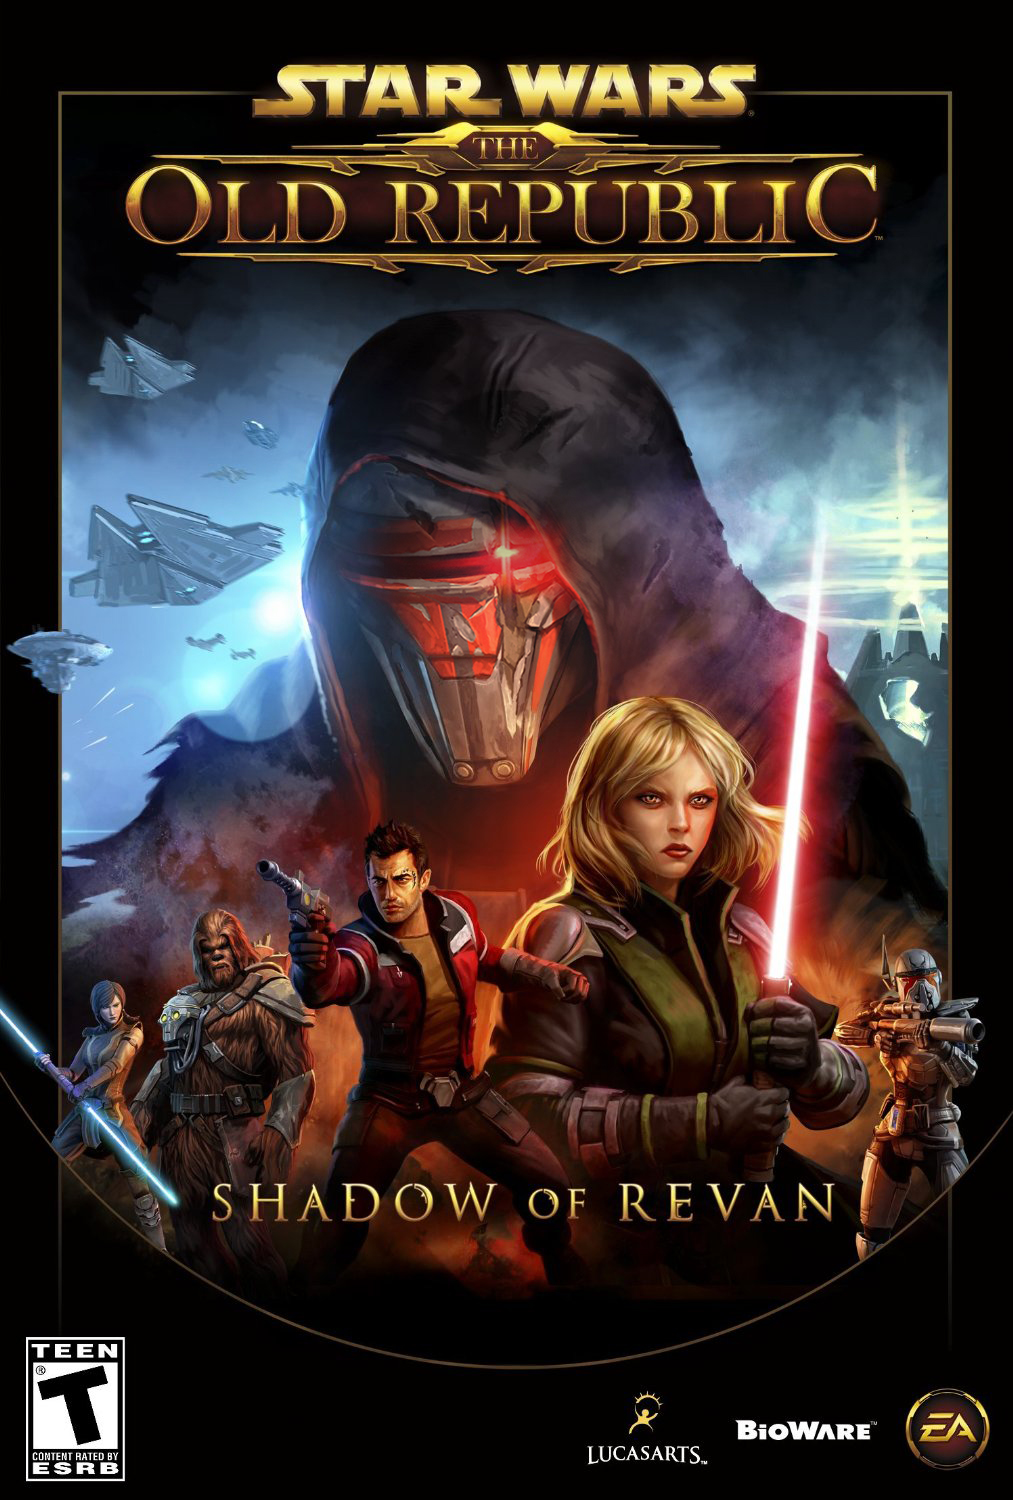 Star Wars: The Old Republic: Shadow of Revan